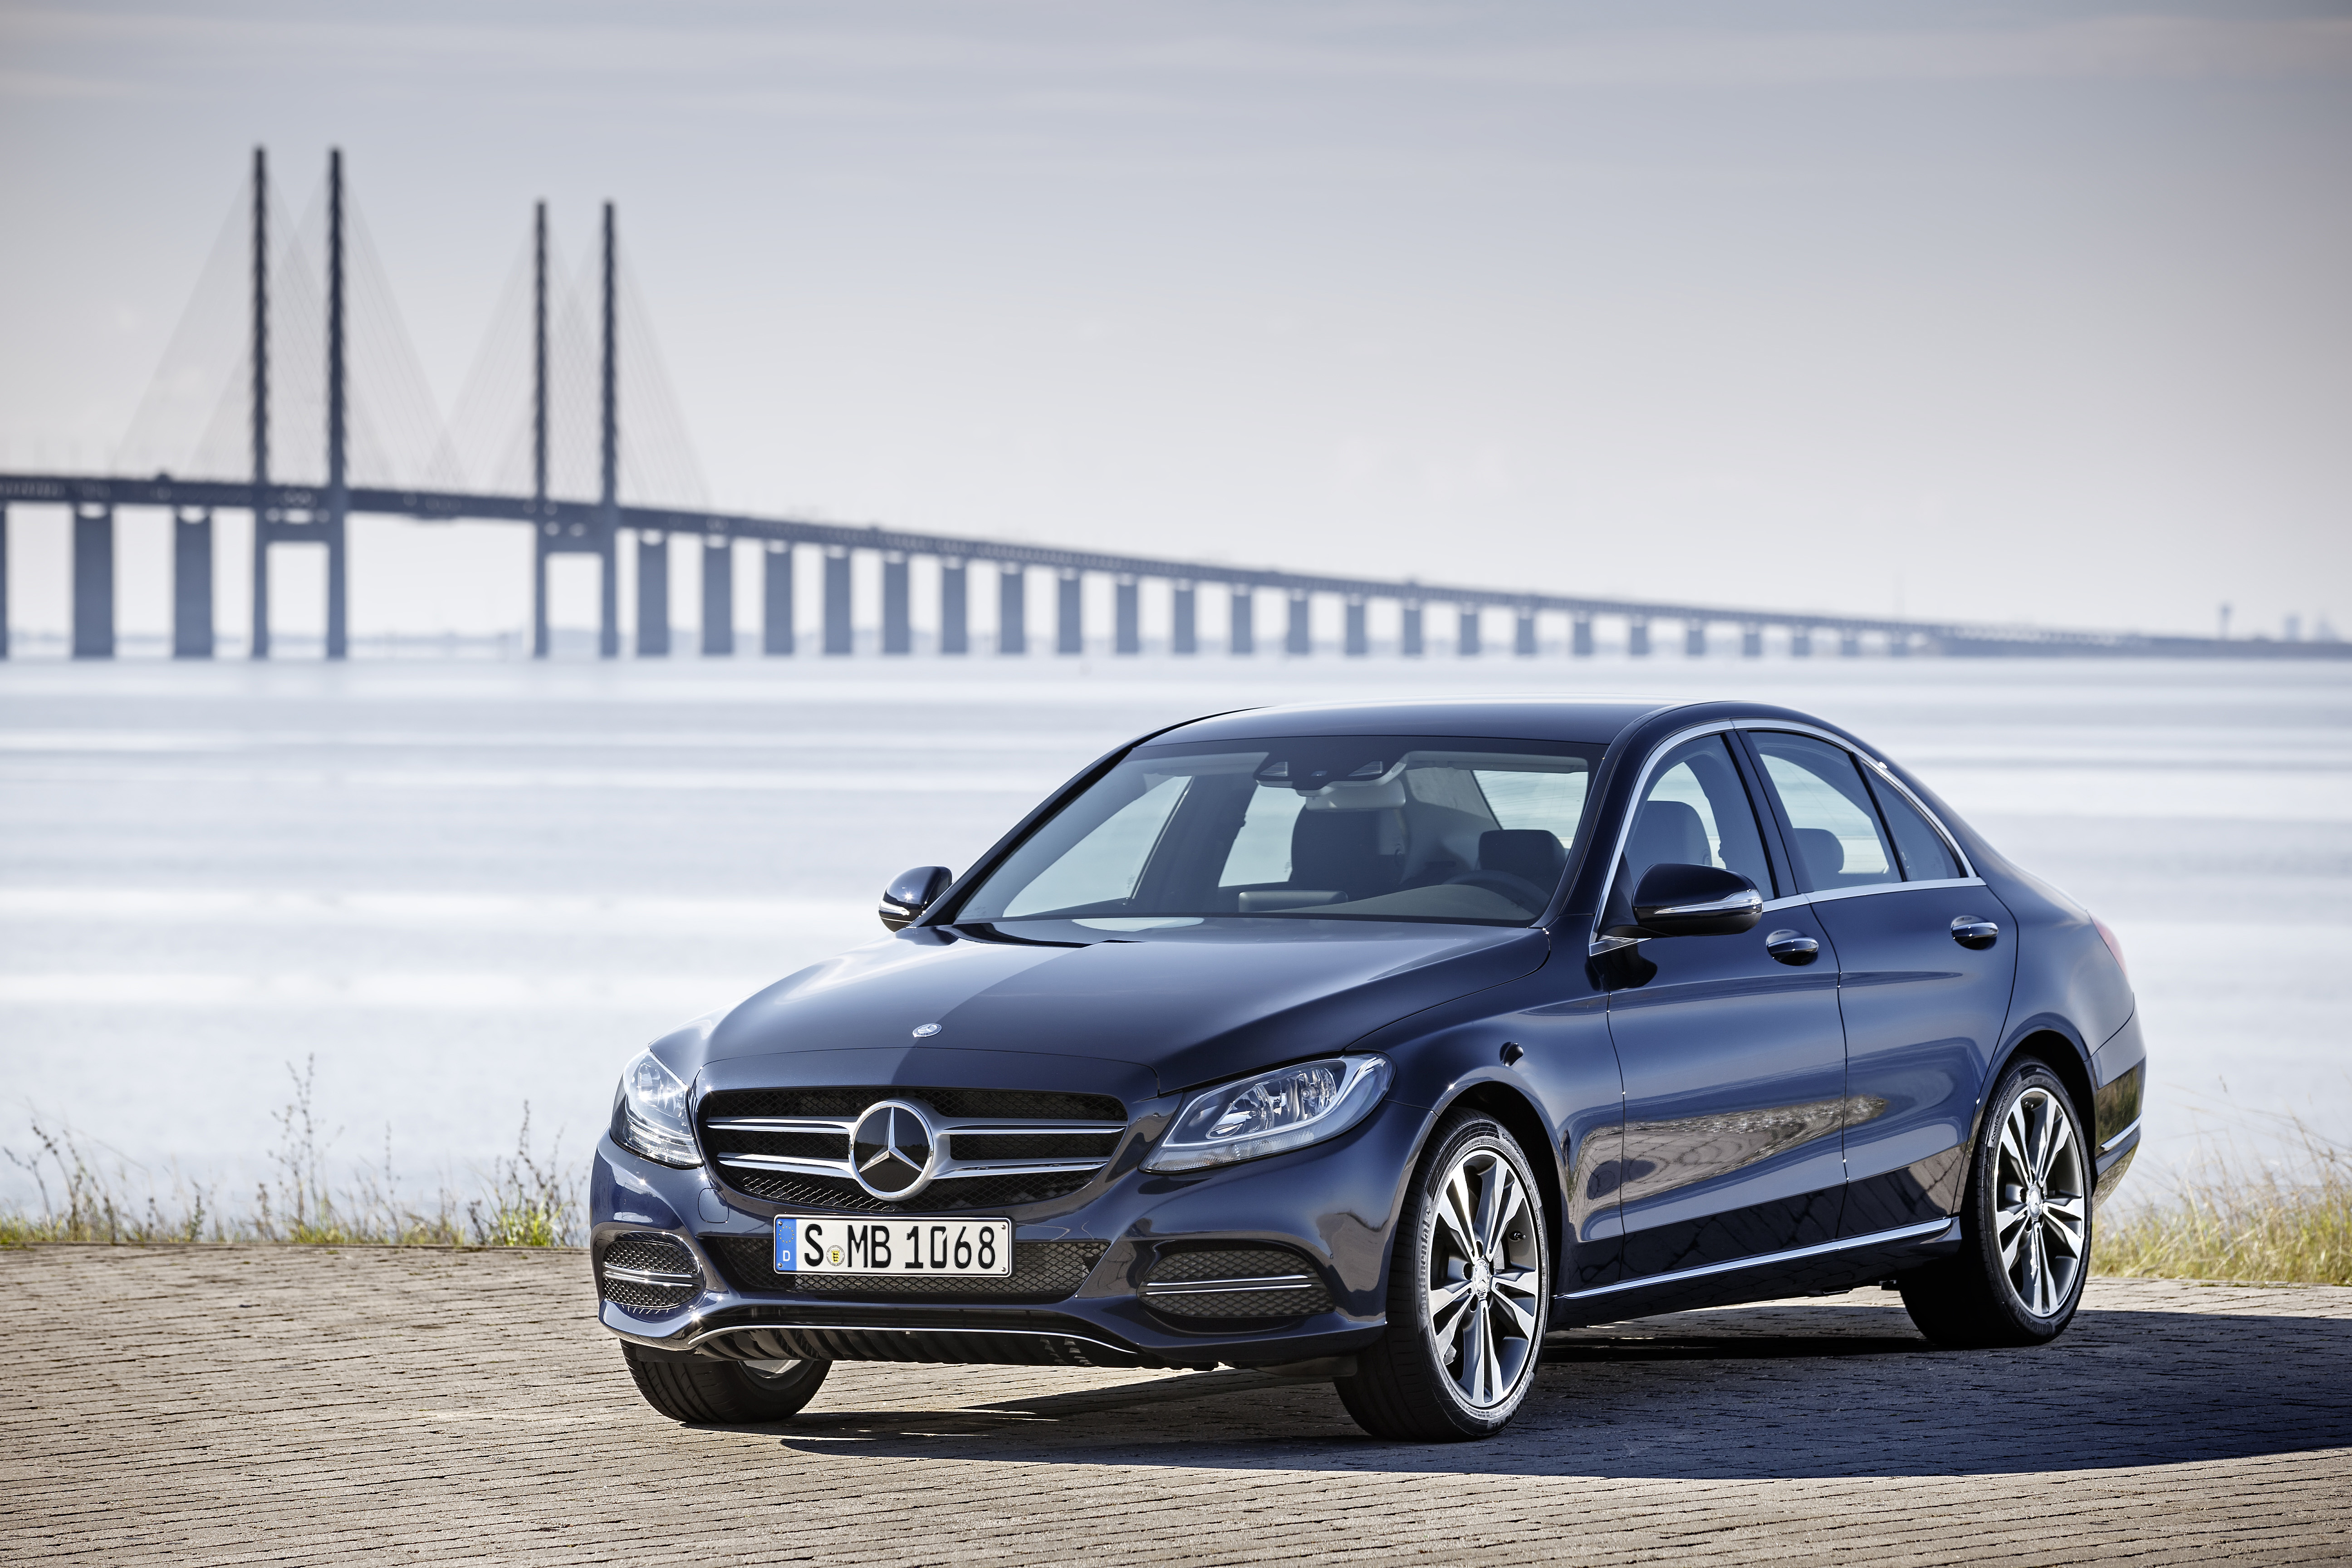 Mercedes benz c class bags 2015 world car of the year for New 2015 mercedes benz c class